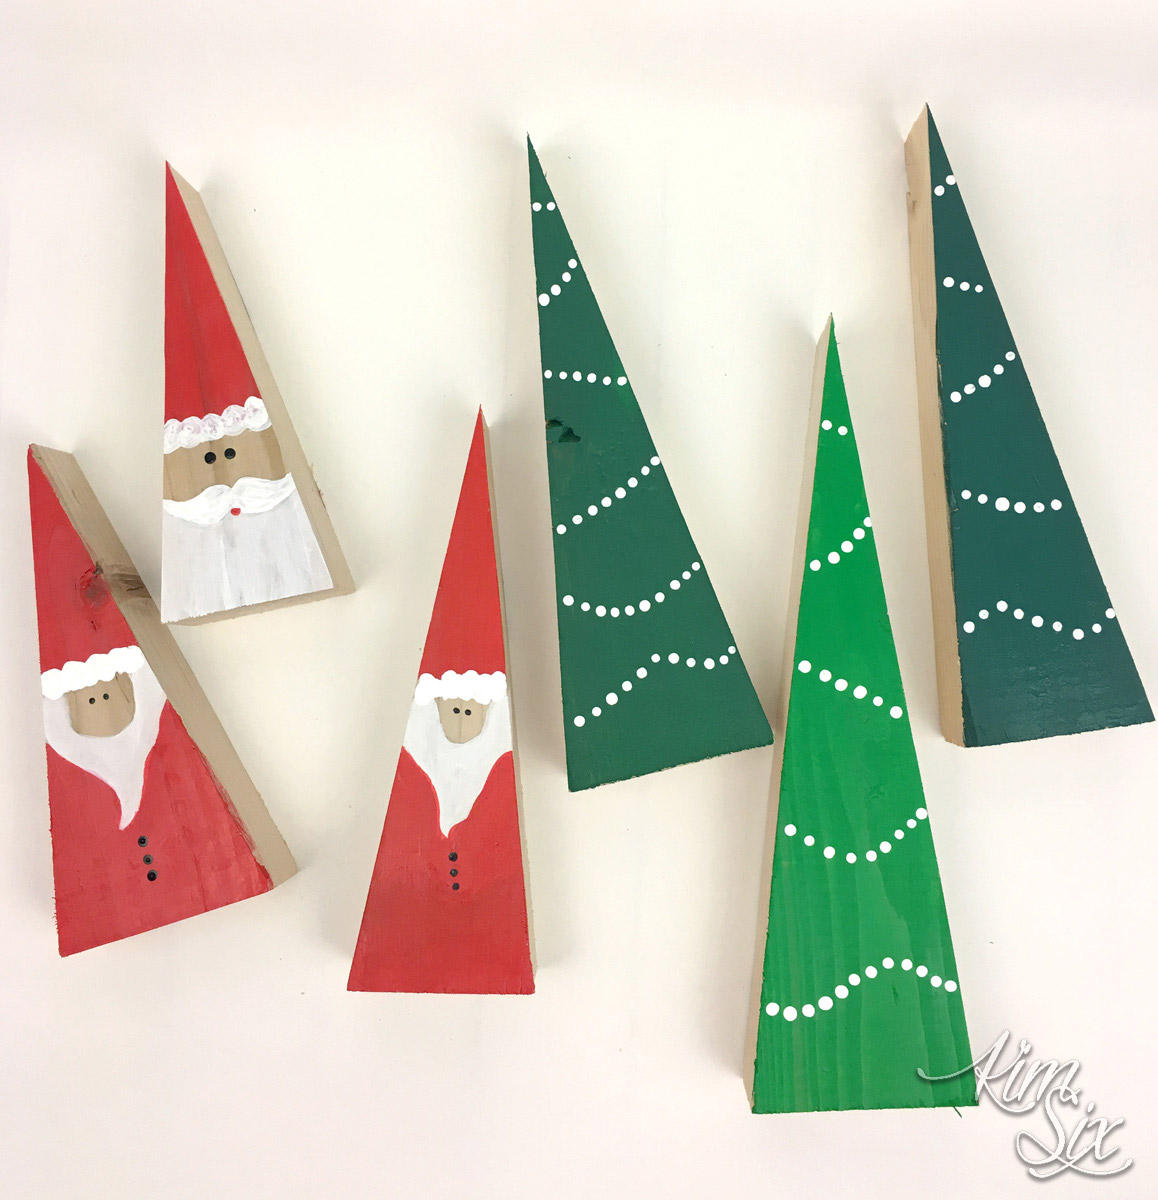 Painted wood block santas and trees